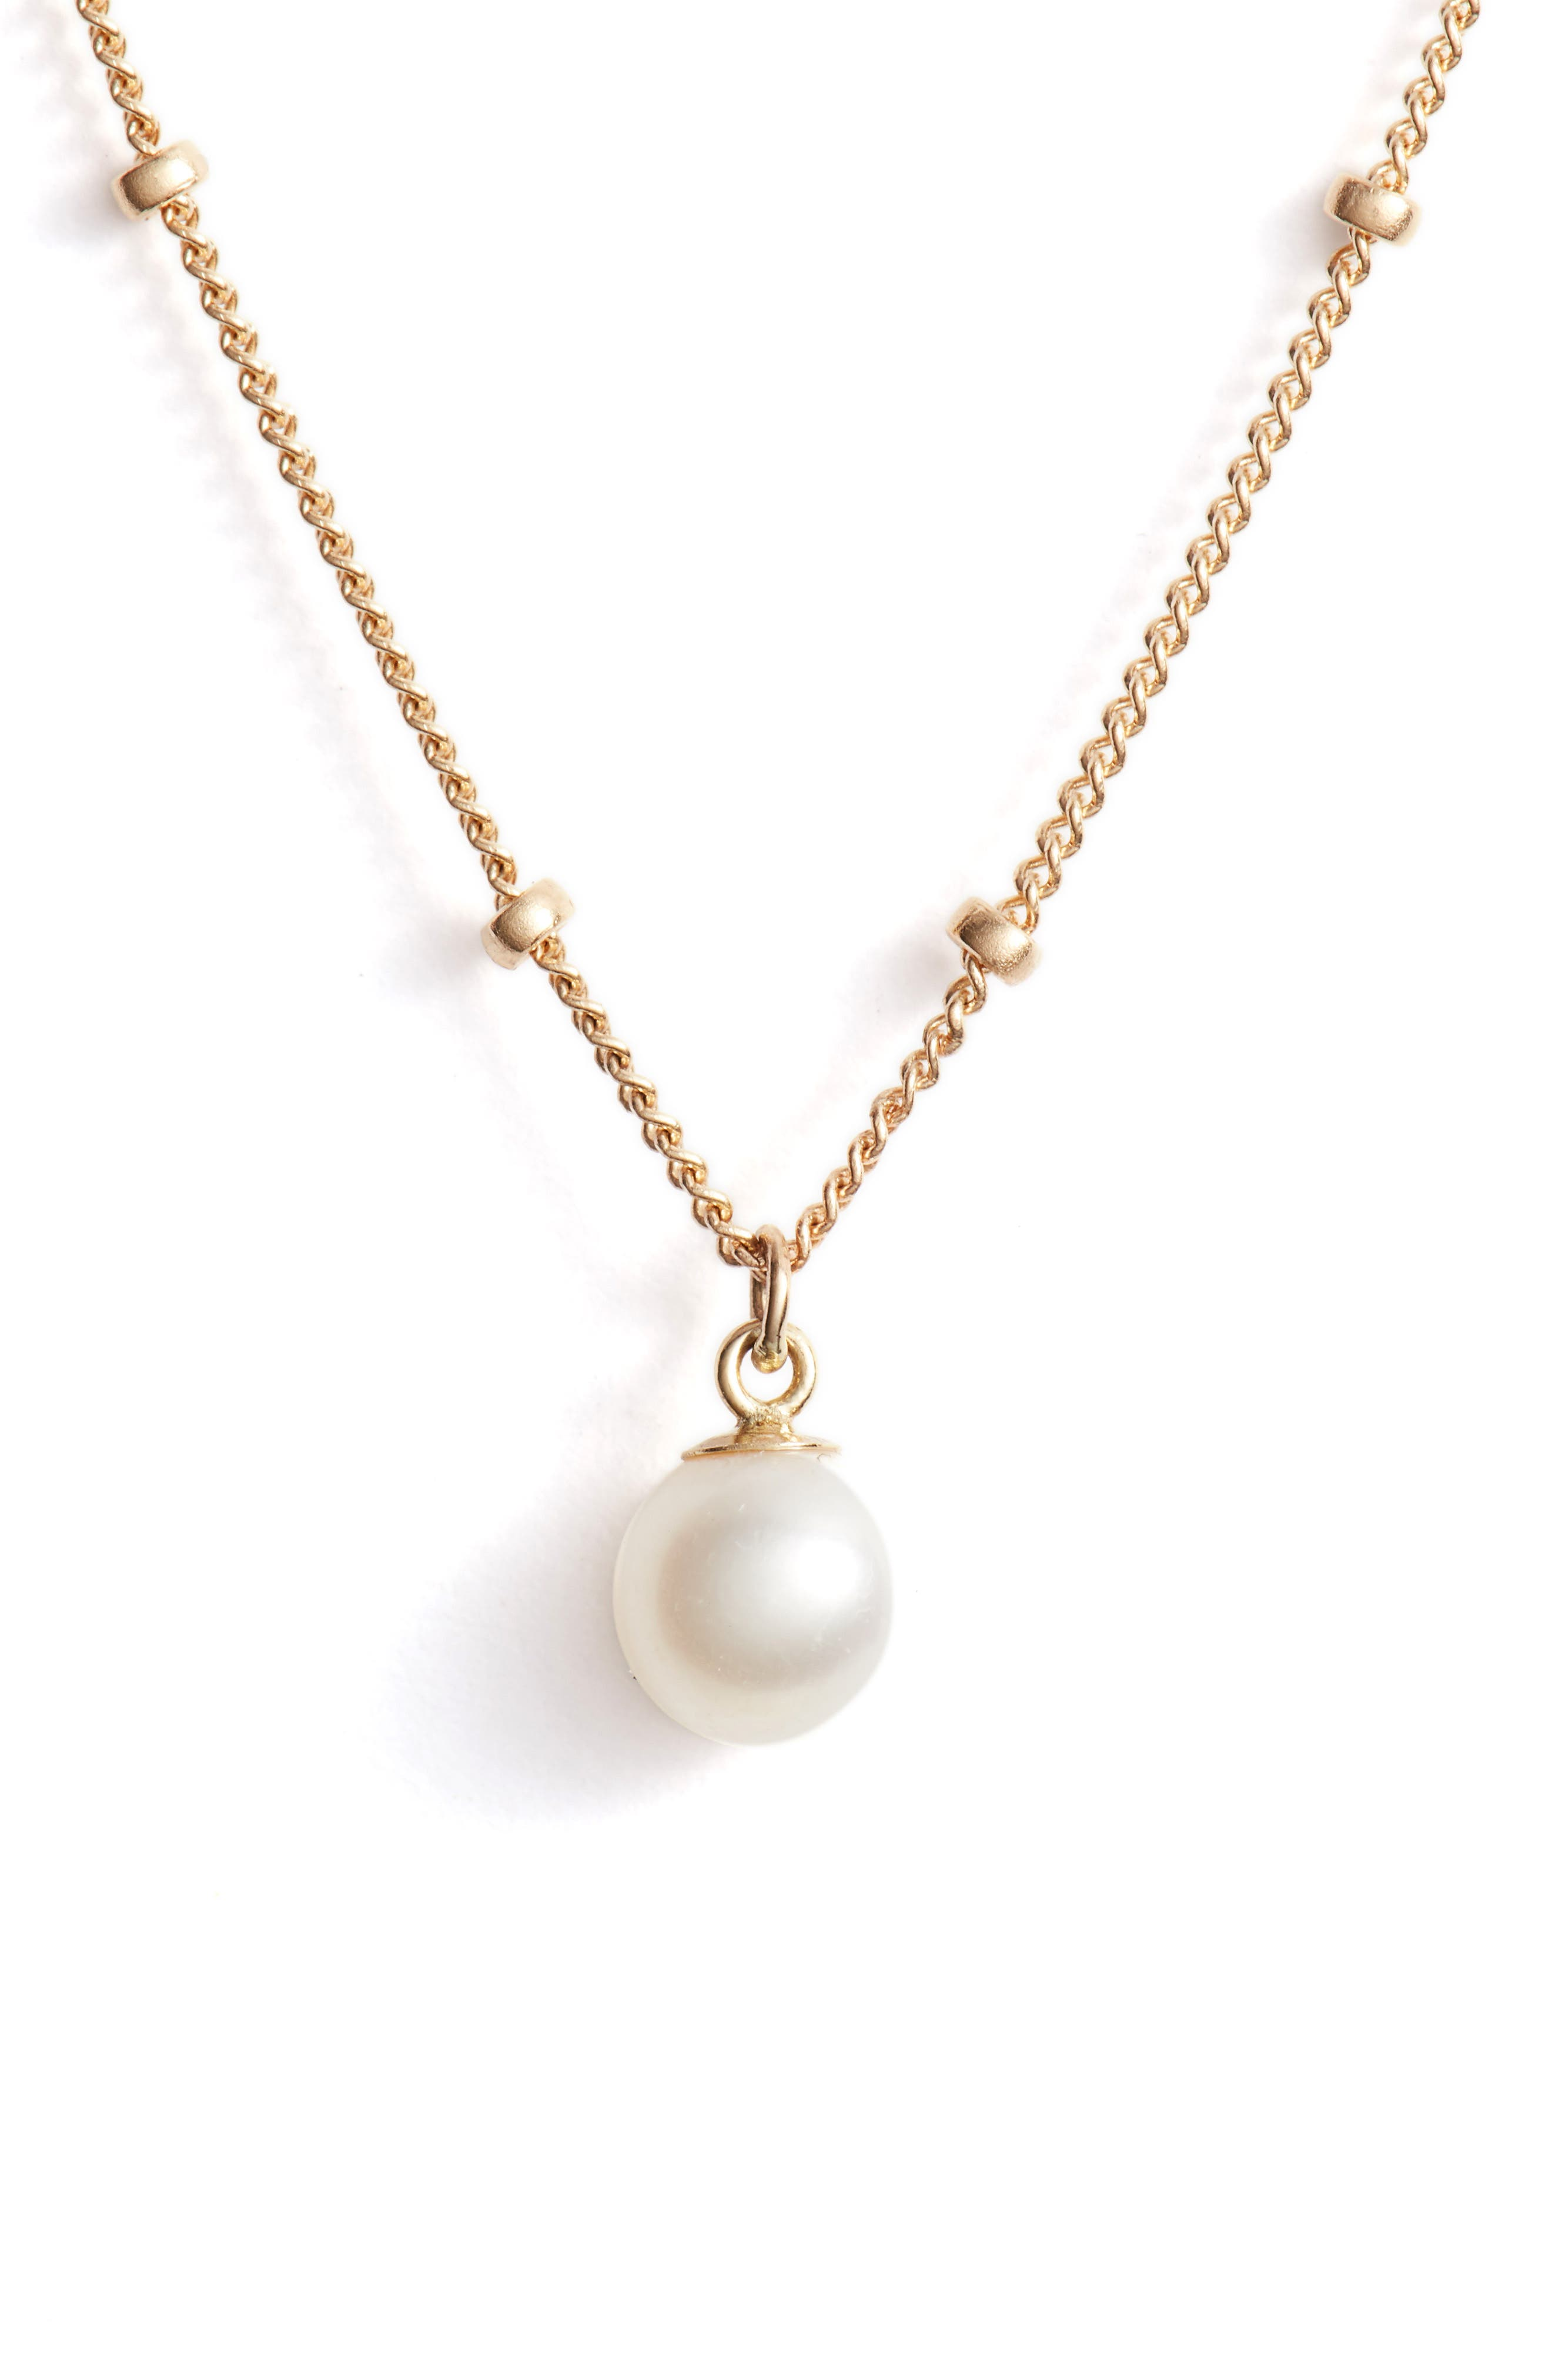 Baby Pearl Bead Choker Necklace,                             Main thumbnail 1, color,                             YELLOW GOLD/ WHITE PEARL